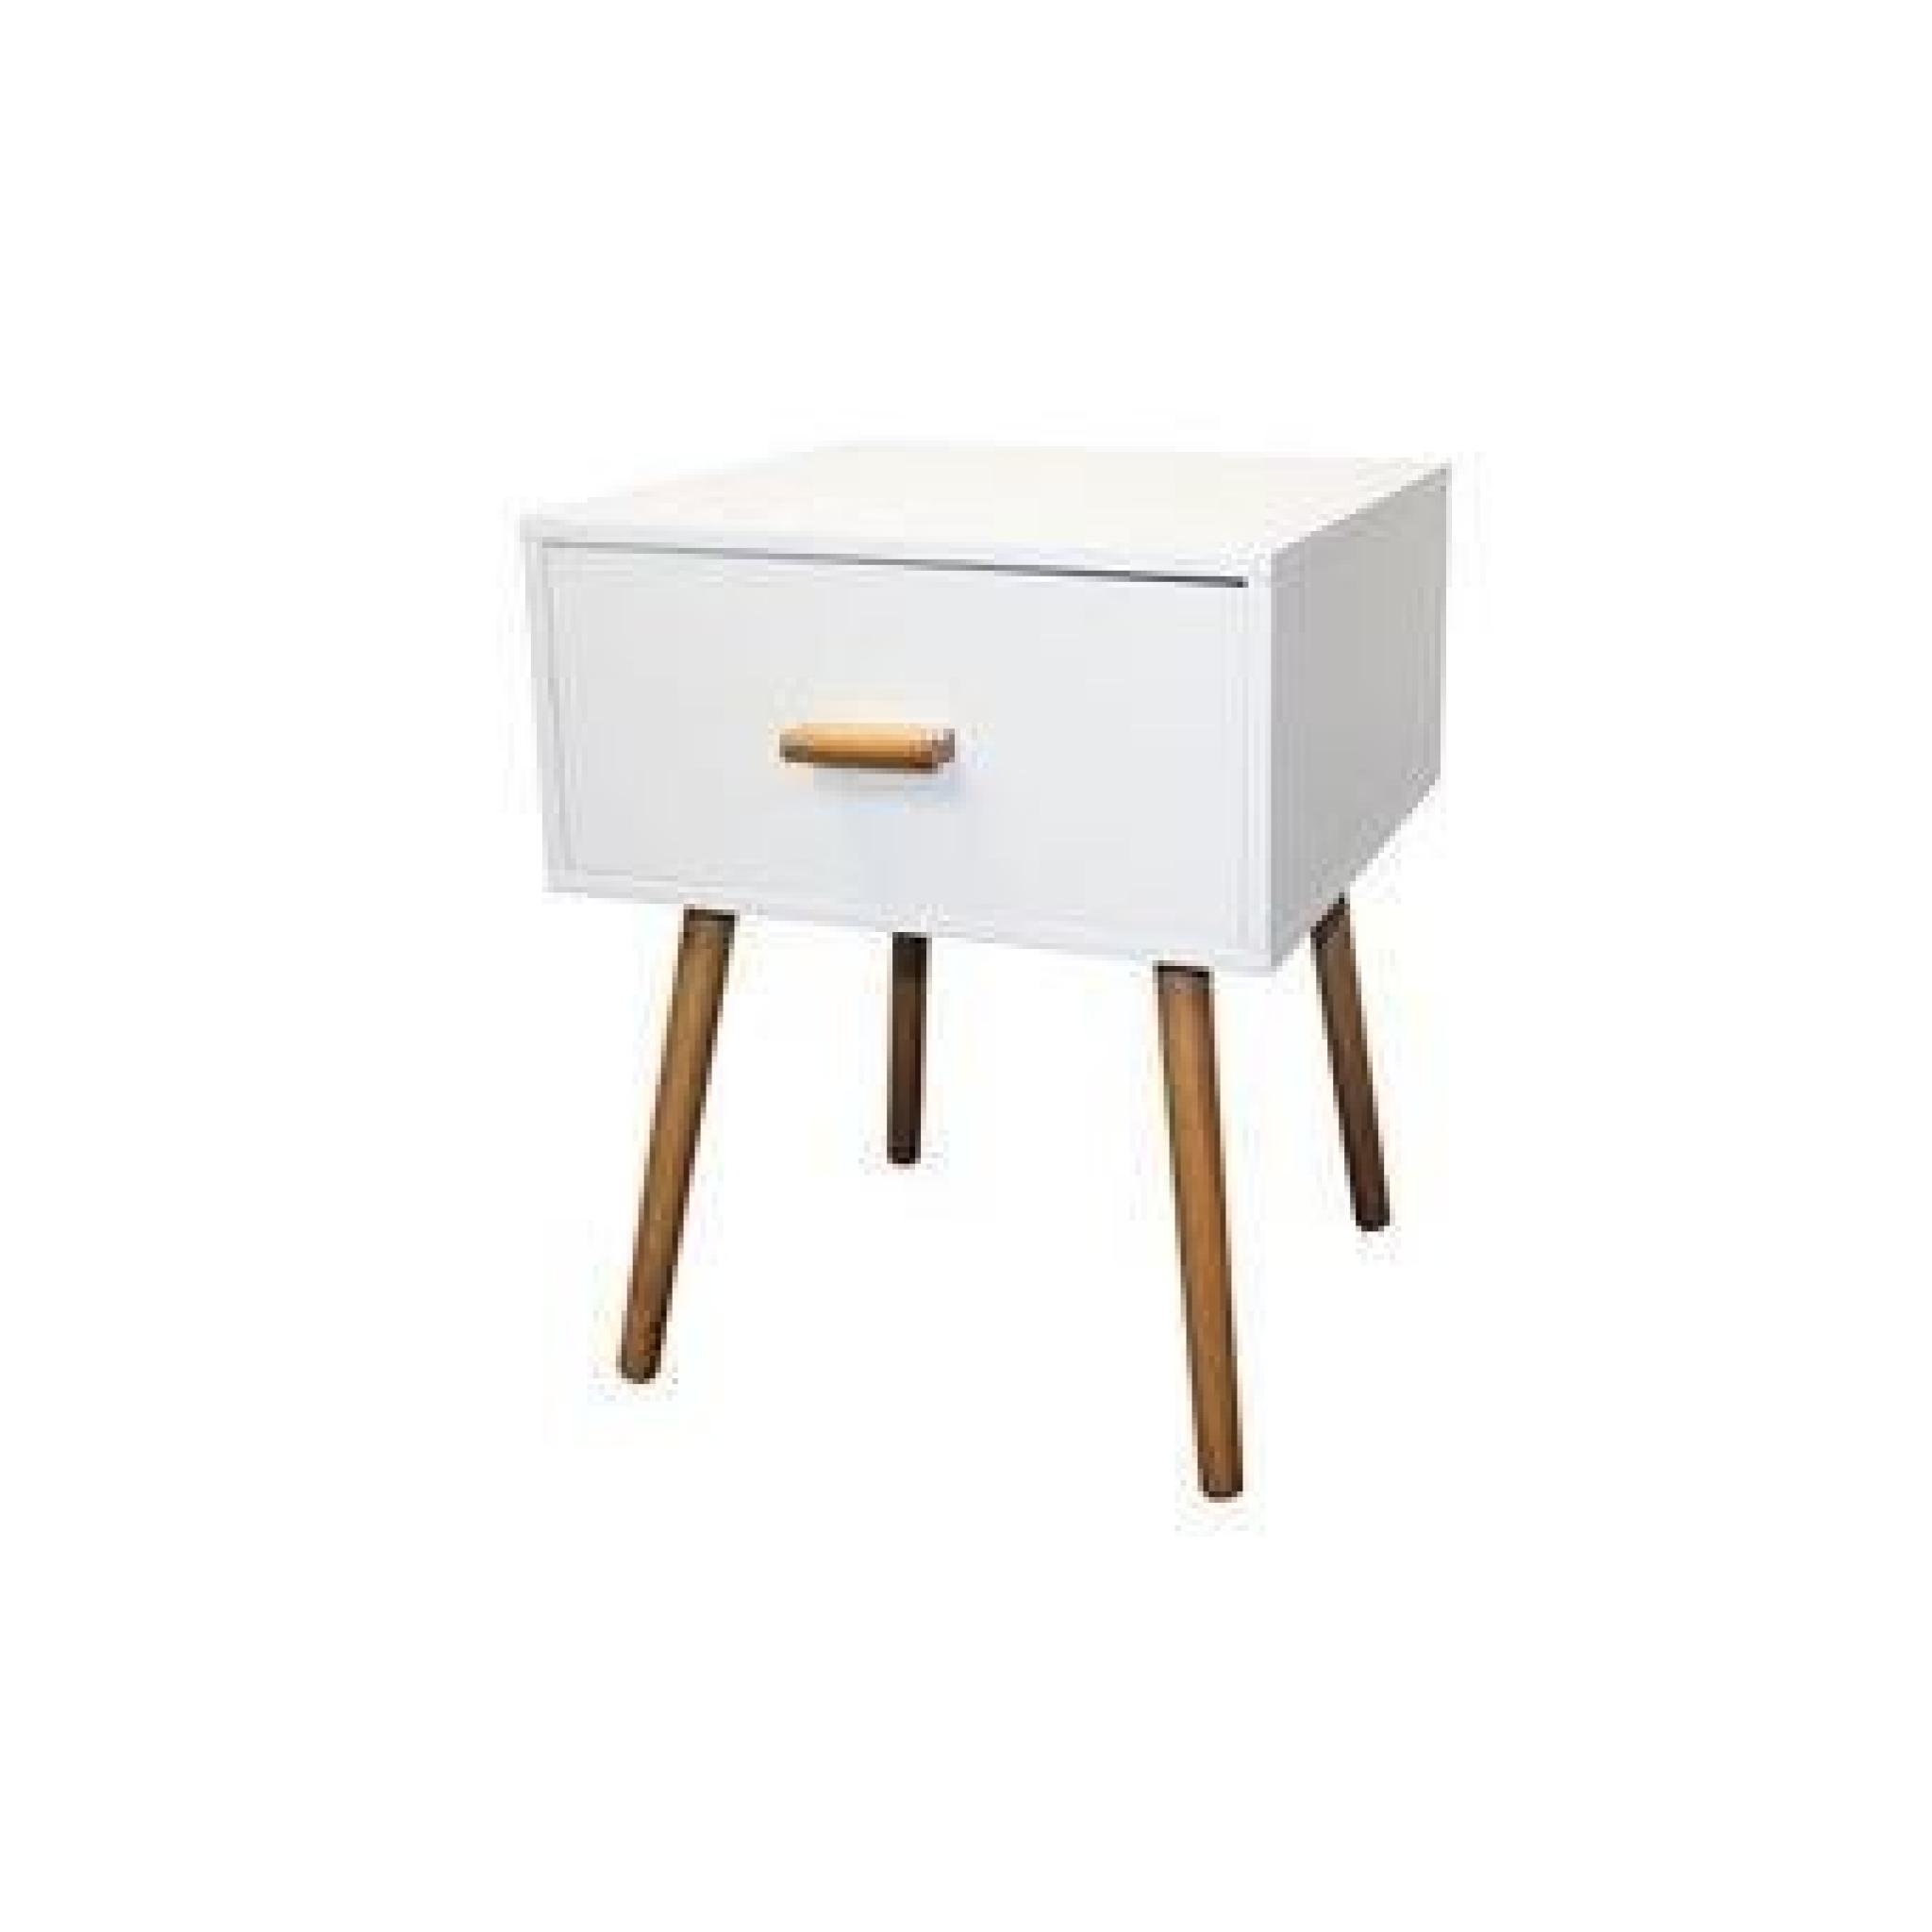 Table de chevet blanc design scandinave achat vente for Table de chevet basse